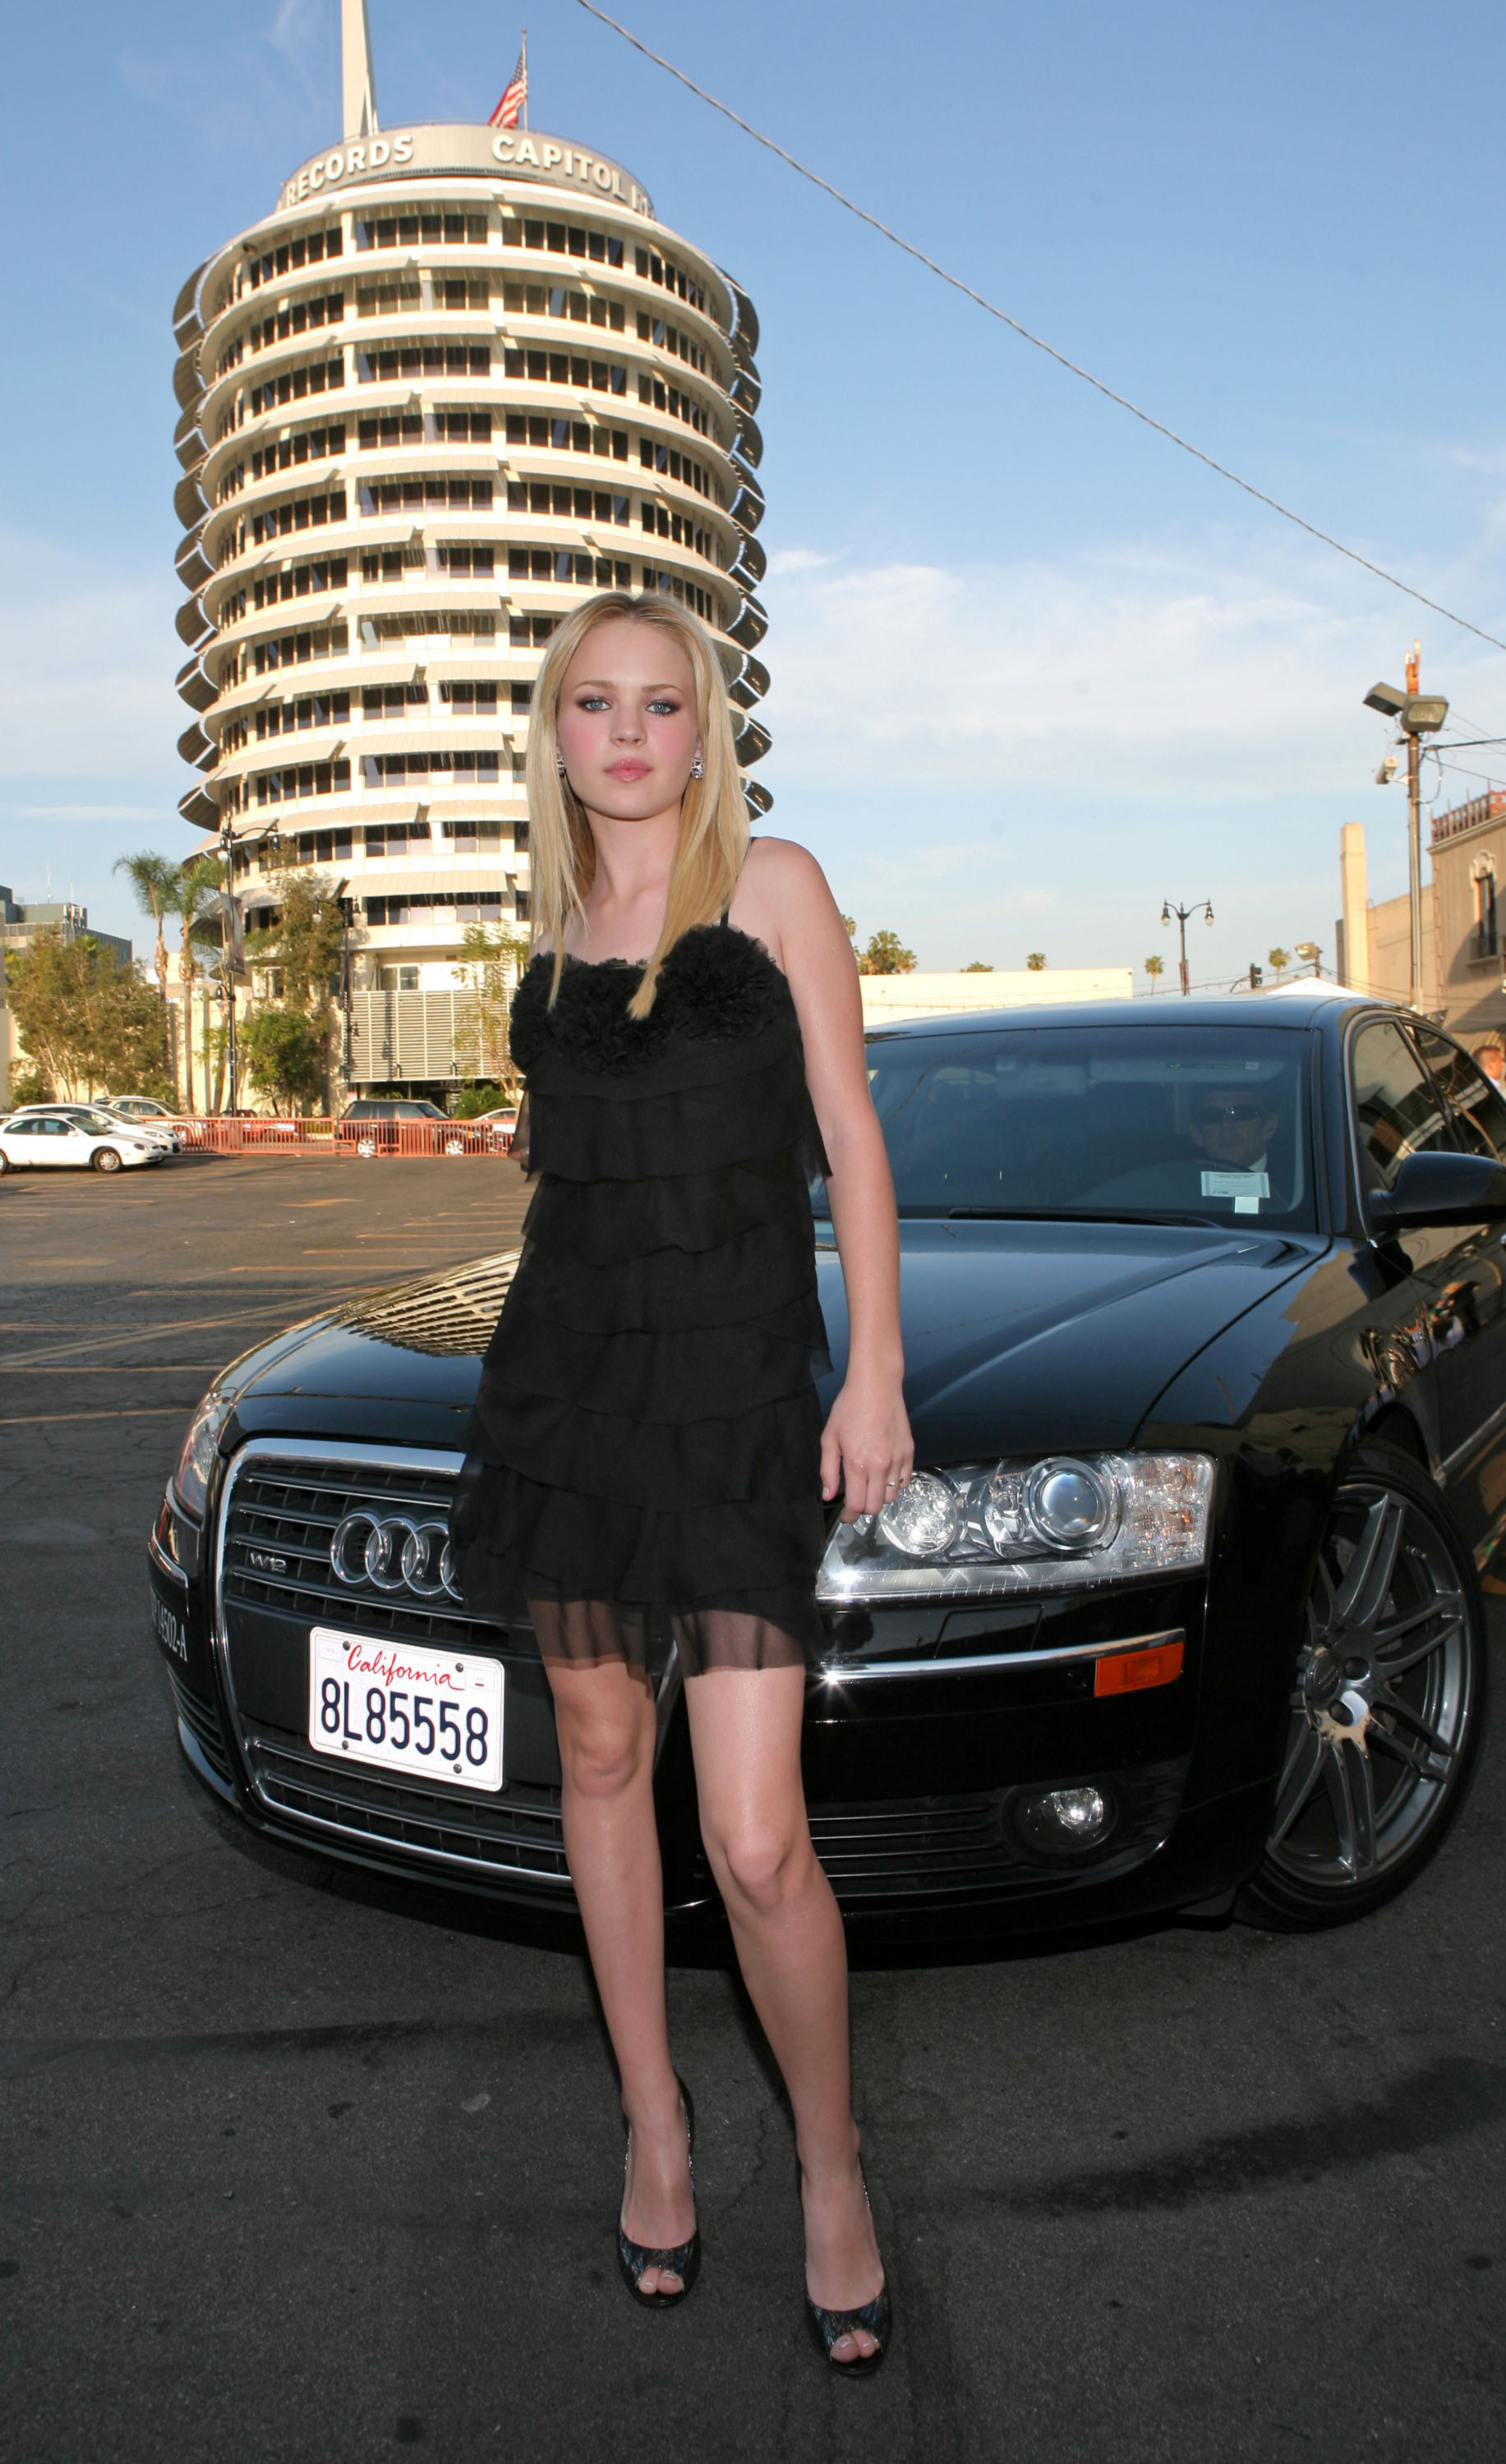 Audi blondes woman dress HD Wallpaper